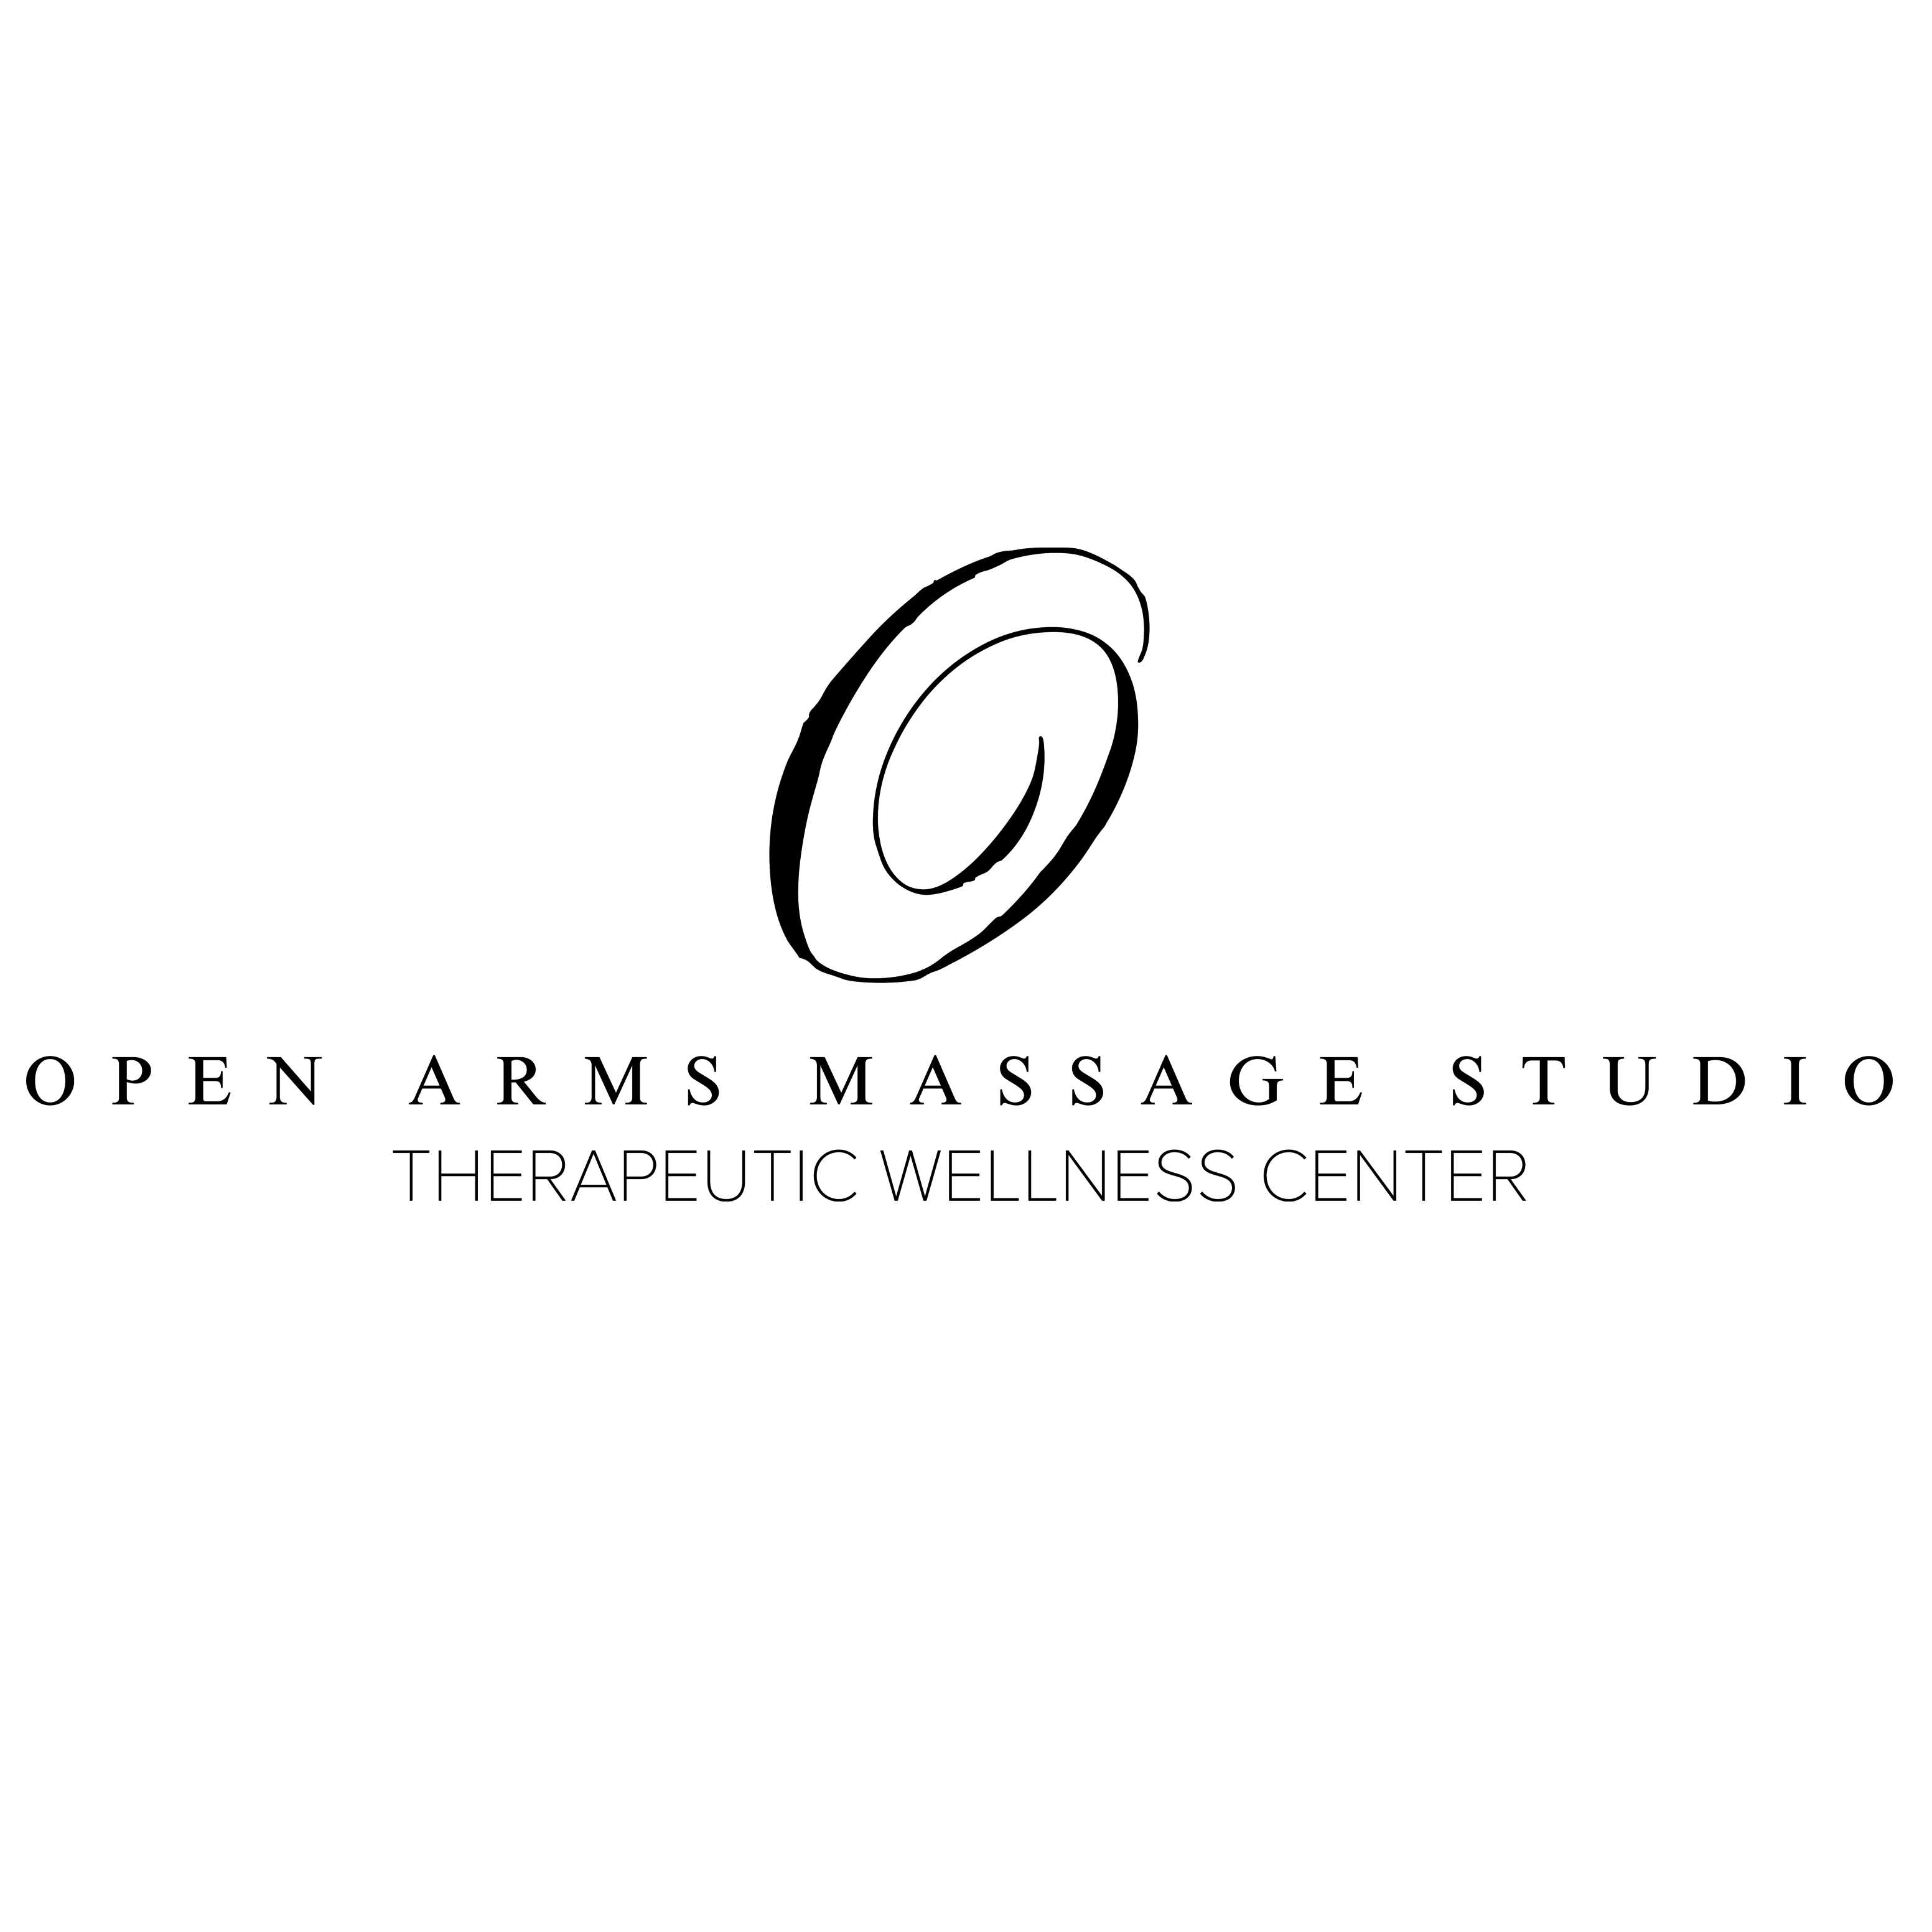 Open Arms Massage Studio Therapeutic Wellness Center